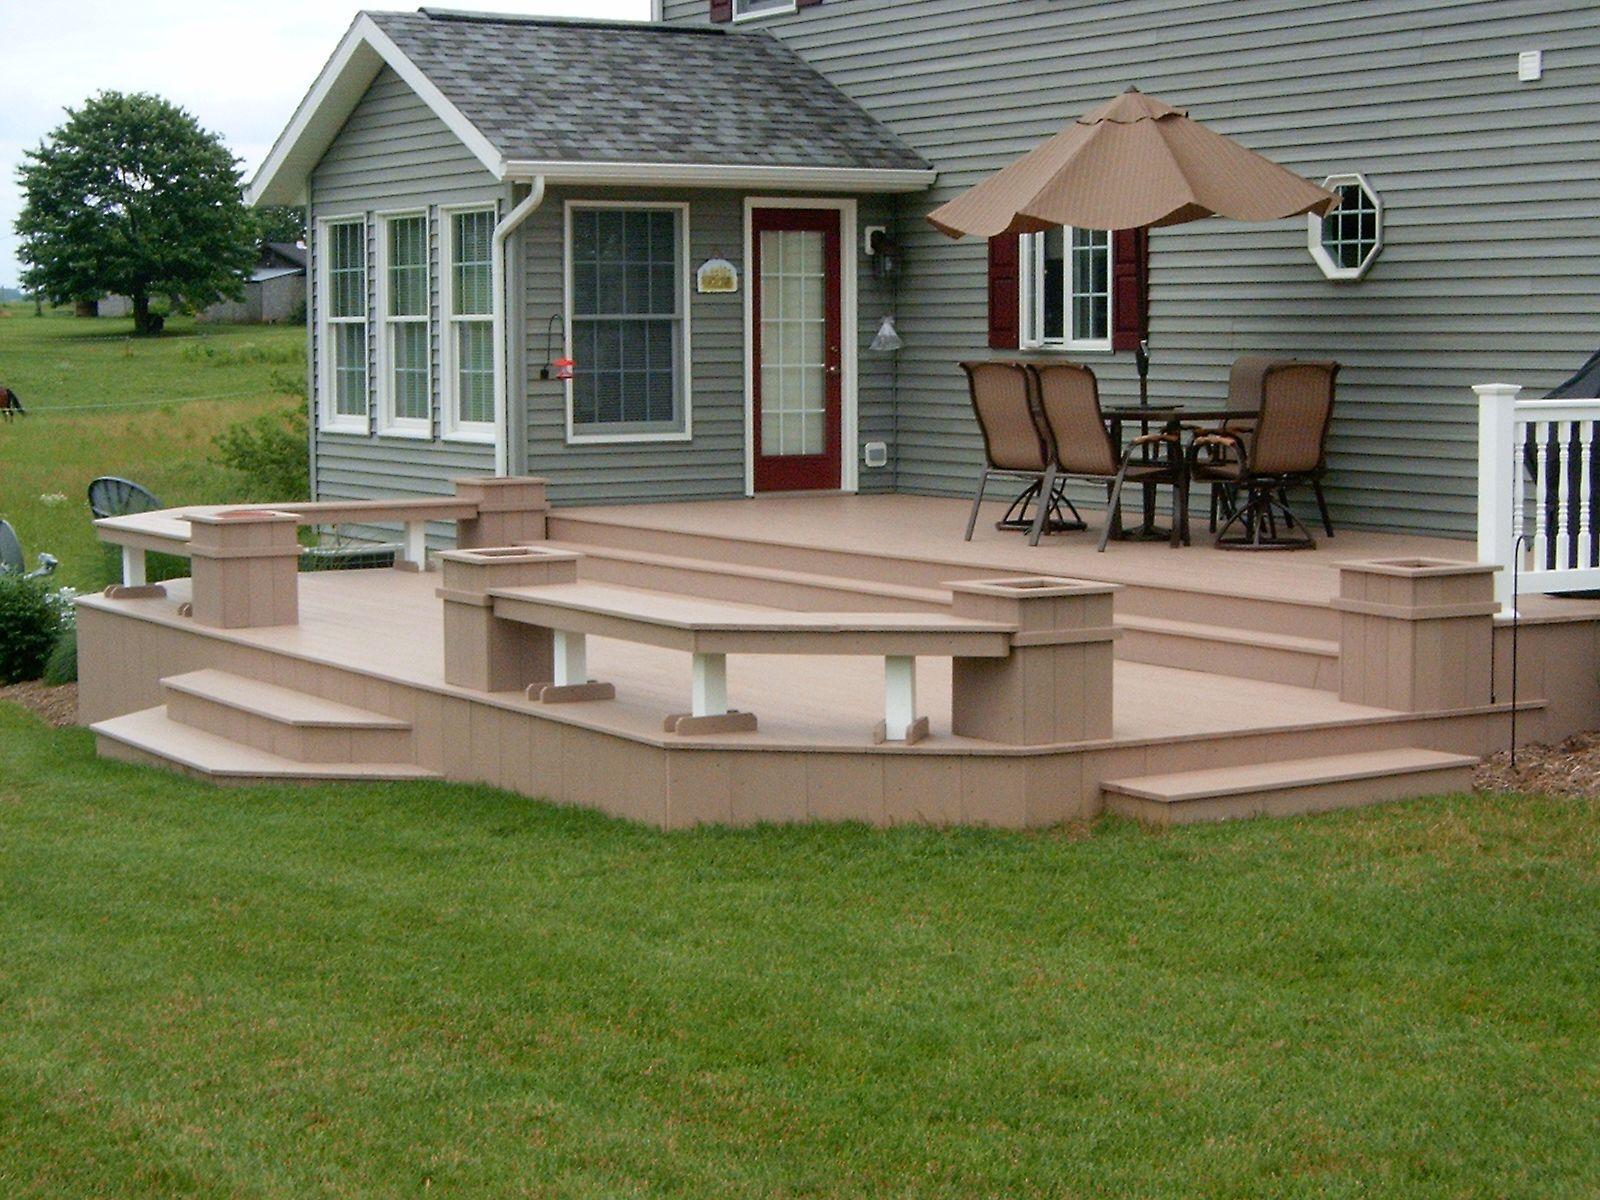 Outdoor decks designed to suit your needs and your budget